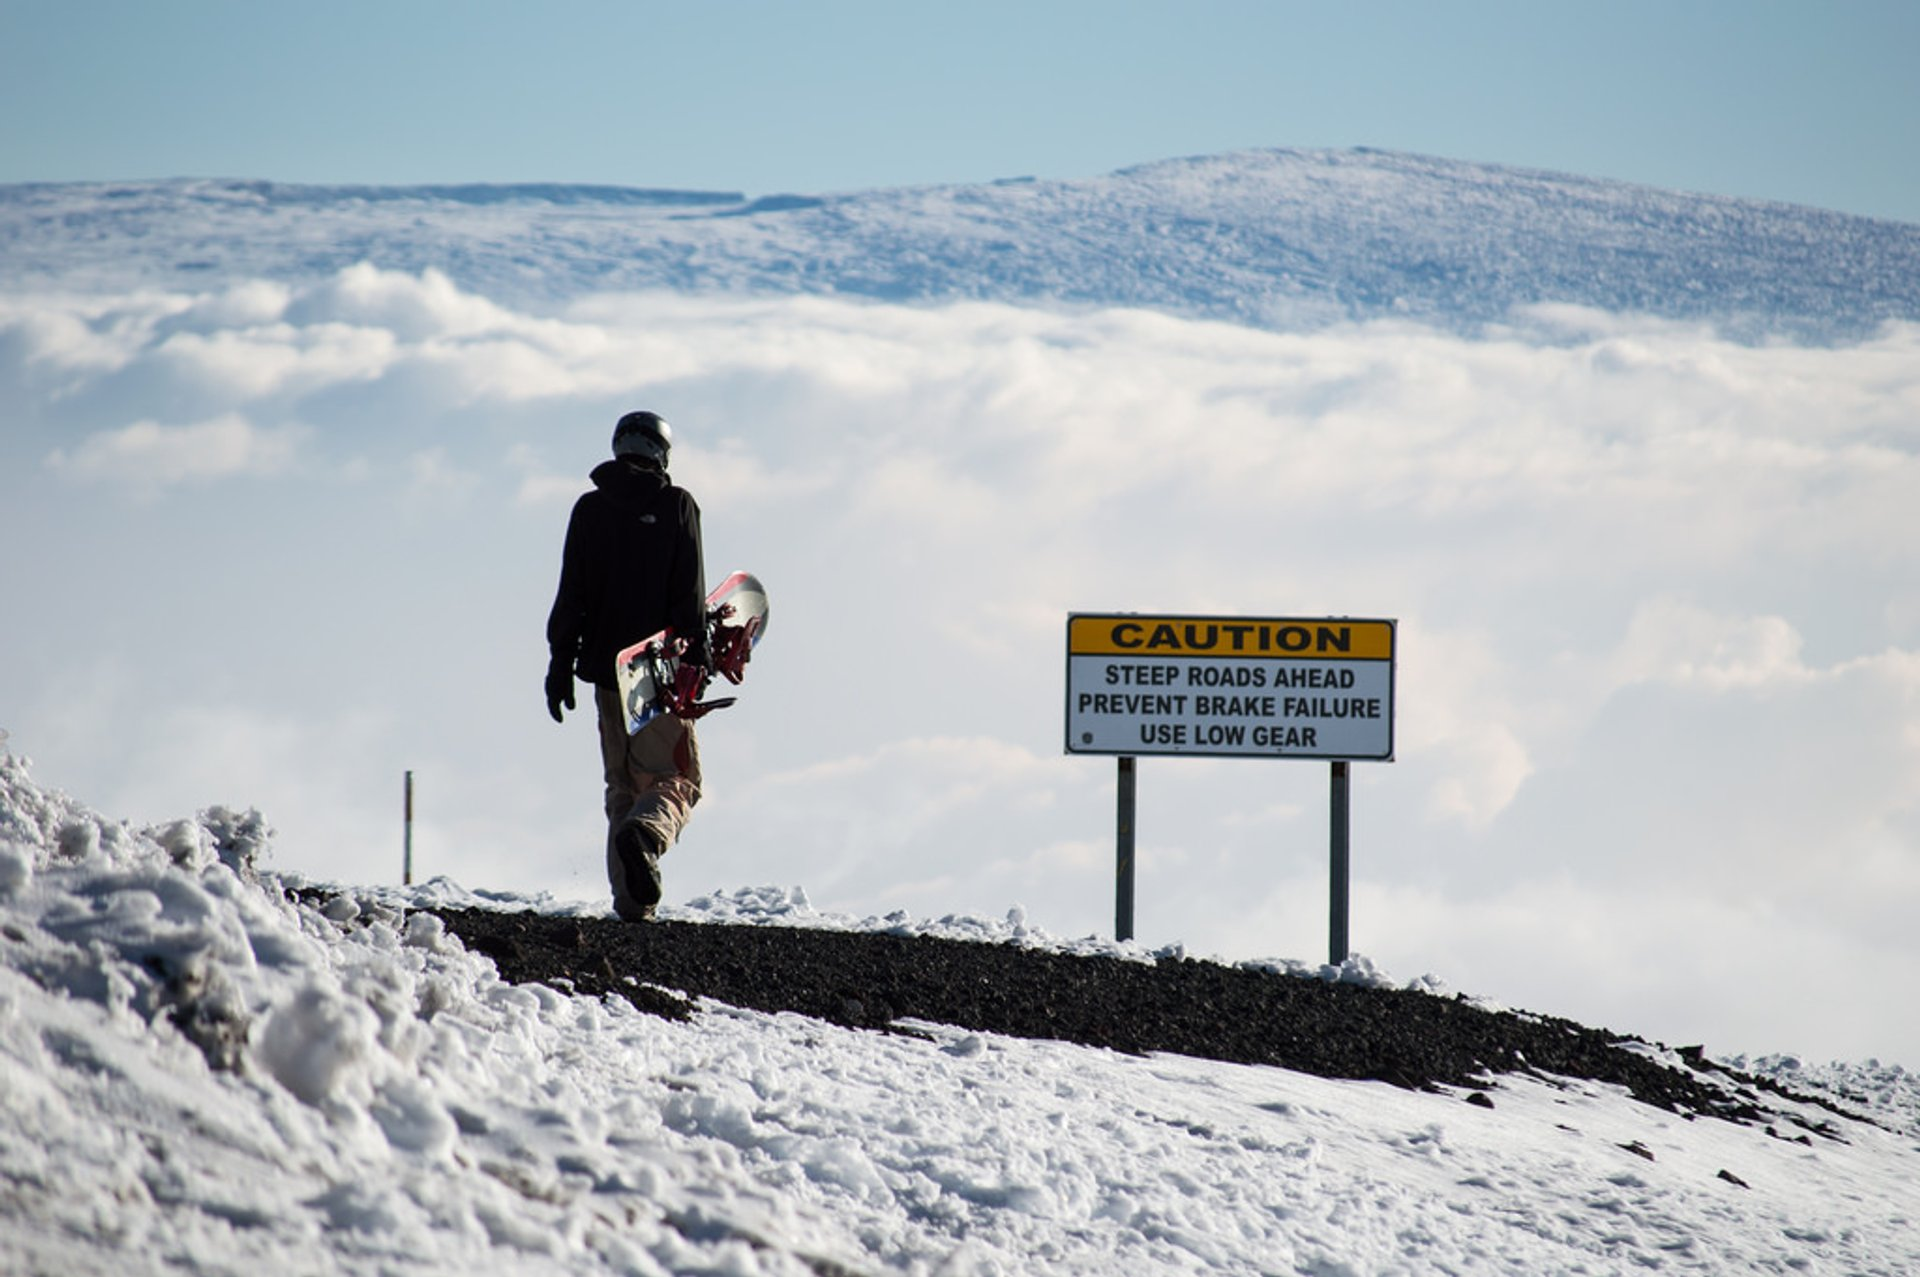 Best time for Skiing and Snowboarding Mauna Kea in Hawaii 2020